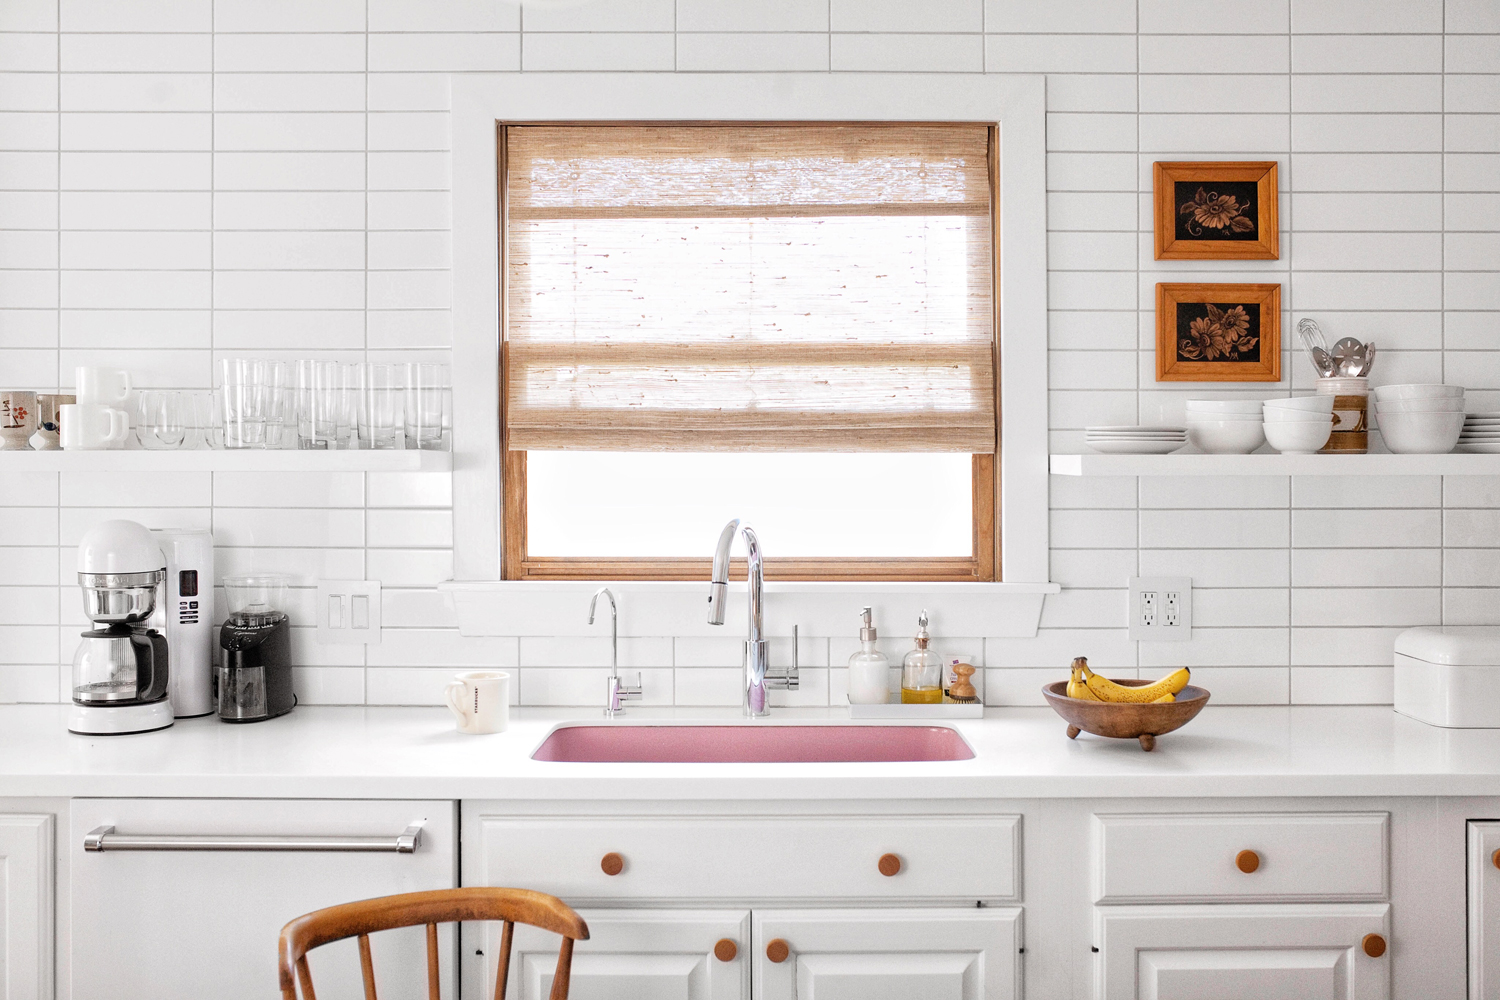 woven wood shades from Blinds.com